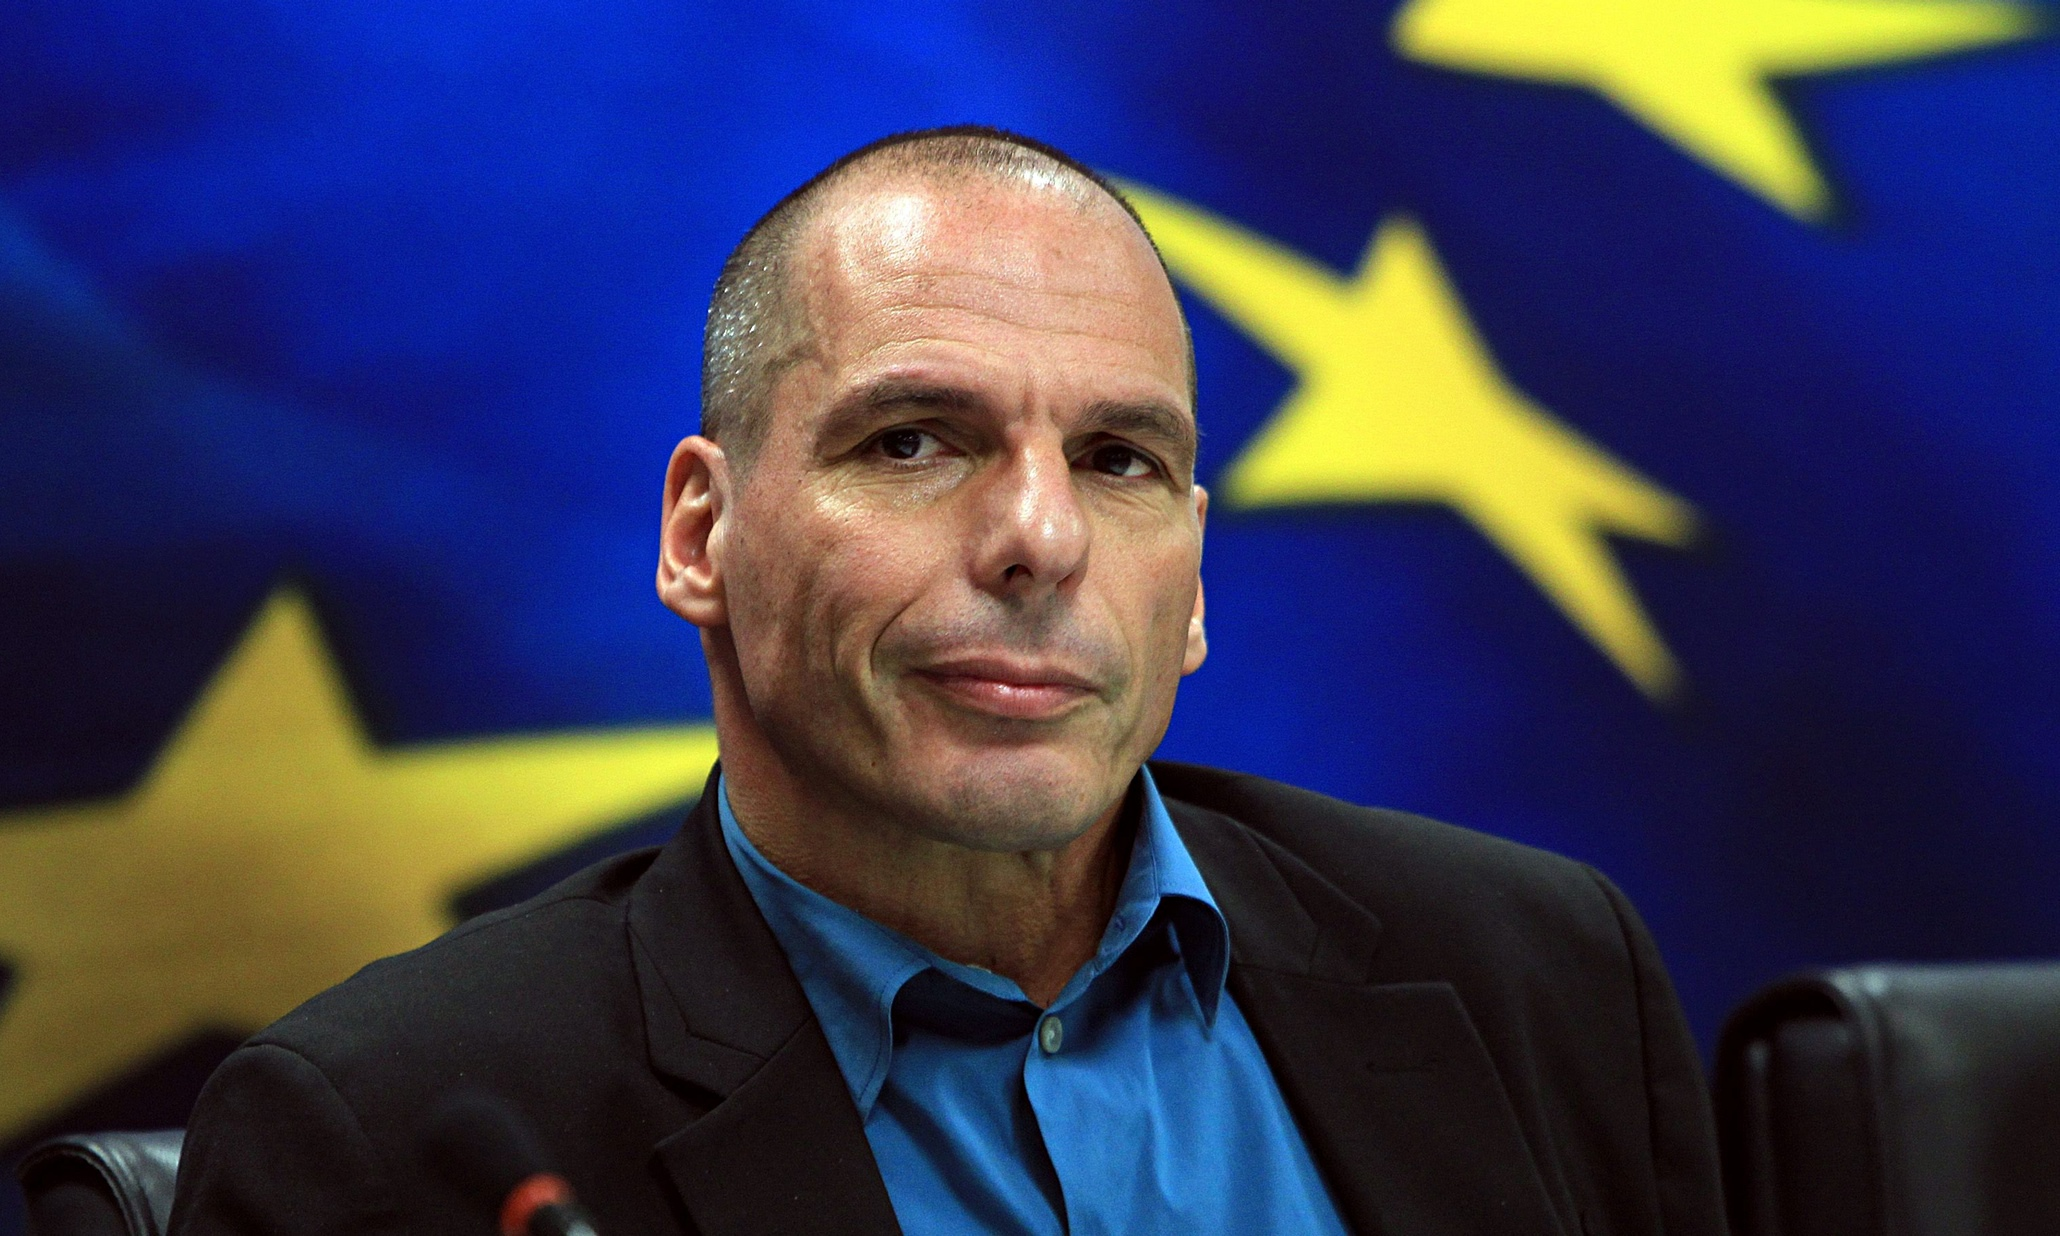 British economists and commentators split over Varoufakis's 'Plan B'